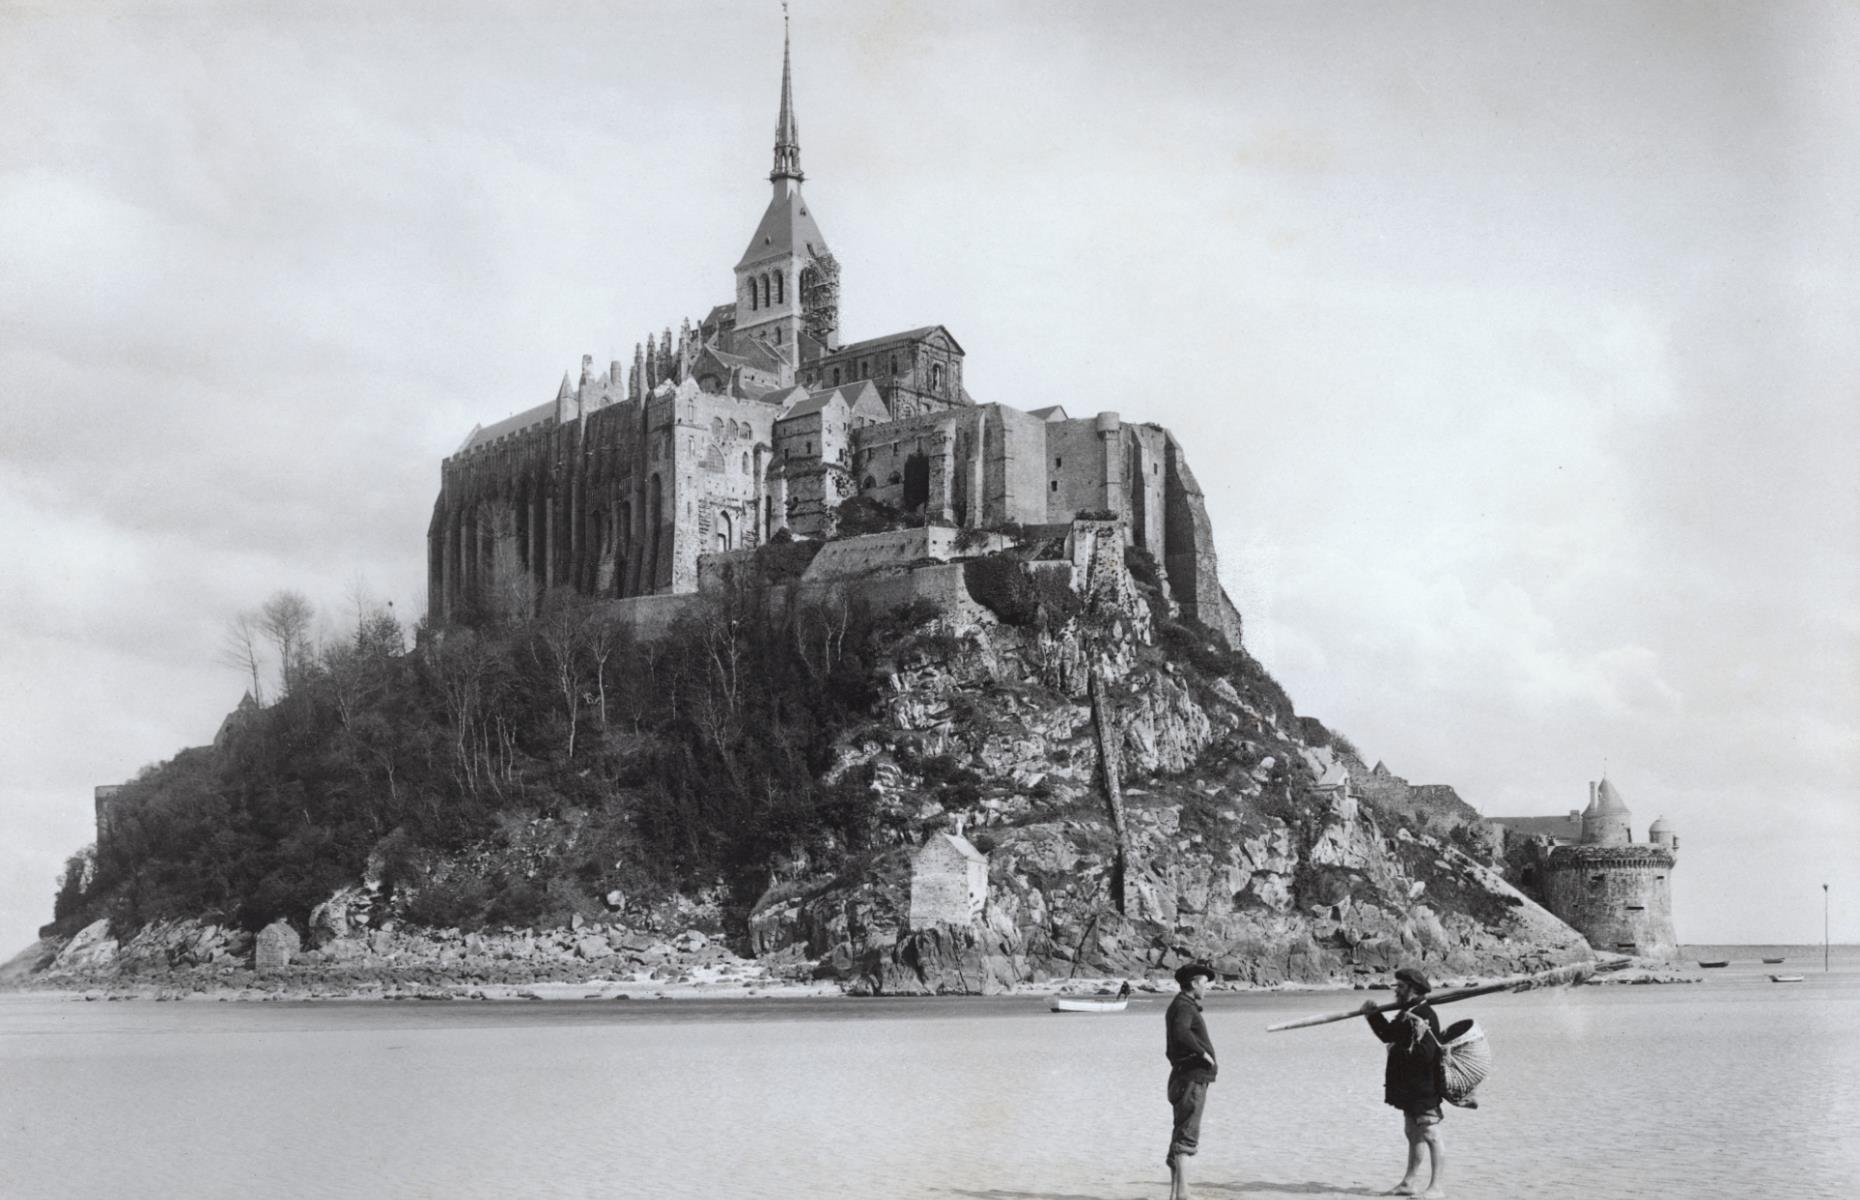 Slide 16 of 51: A picturesque monastery sitting atop a small island off the coast of Normandy, Mont Saint-Michel is one of the most visited landmarks in France. Built in the 8th century, it was a popular attraction from the get-go, drawing in a vast number of pilgrims from across Europe who were desperate to see the magnificent structure. Pictured here in circa 1900, two fishermen can be seen on the tidal flats in the foreground.